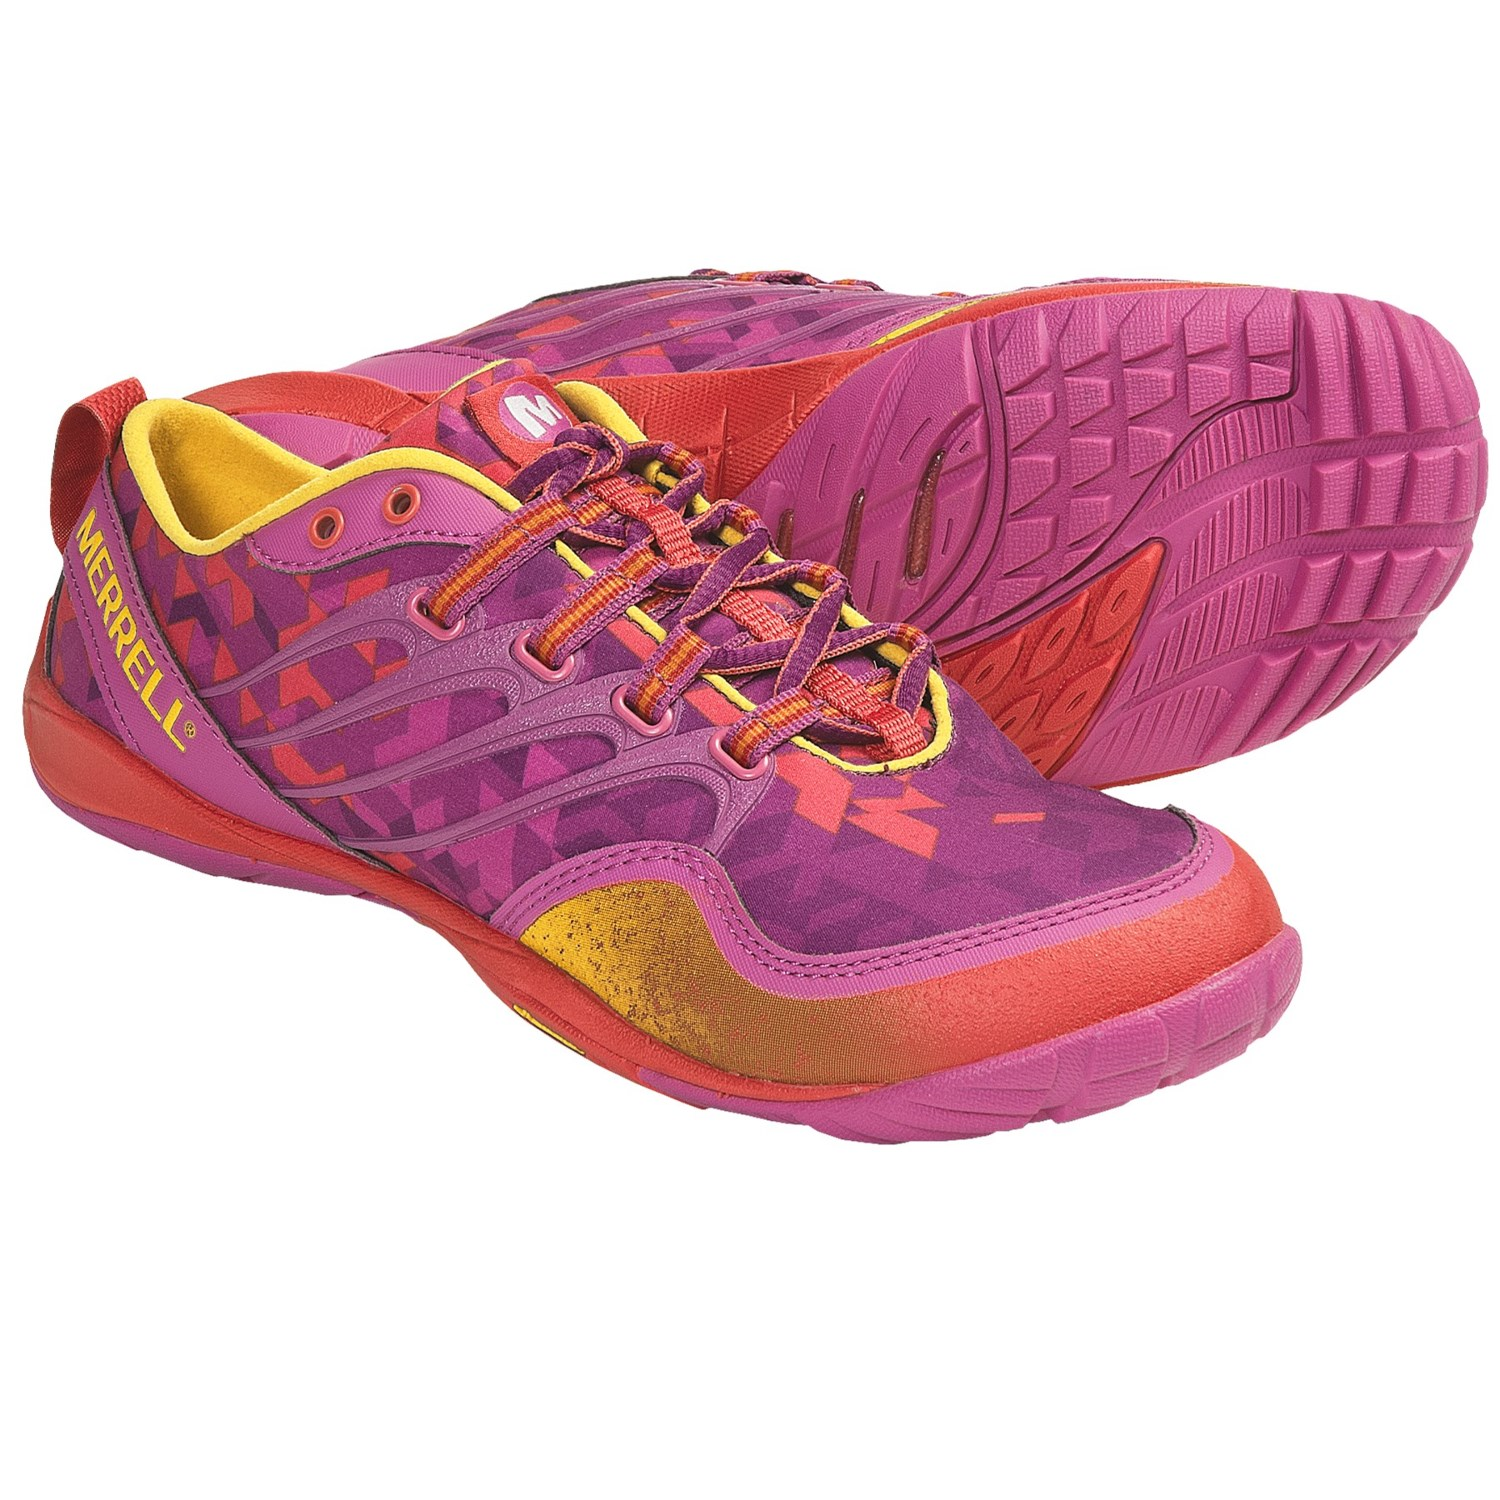 Merrell Barefoot Trail Lithe Glove Running Shoes - Minimalist (For